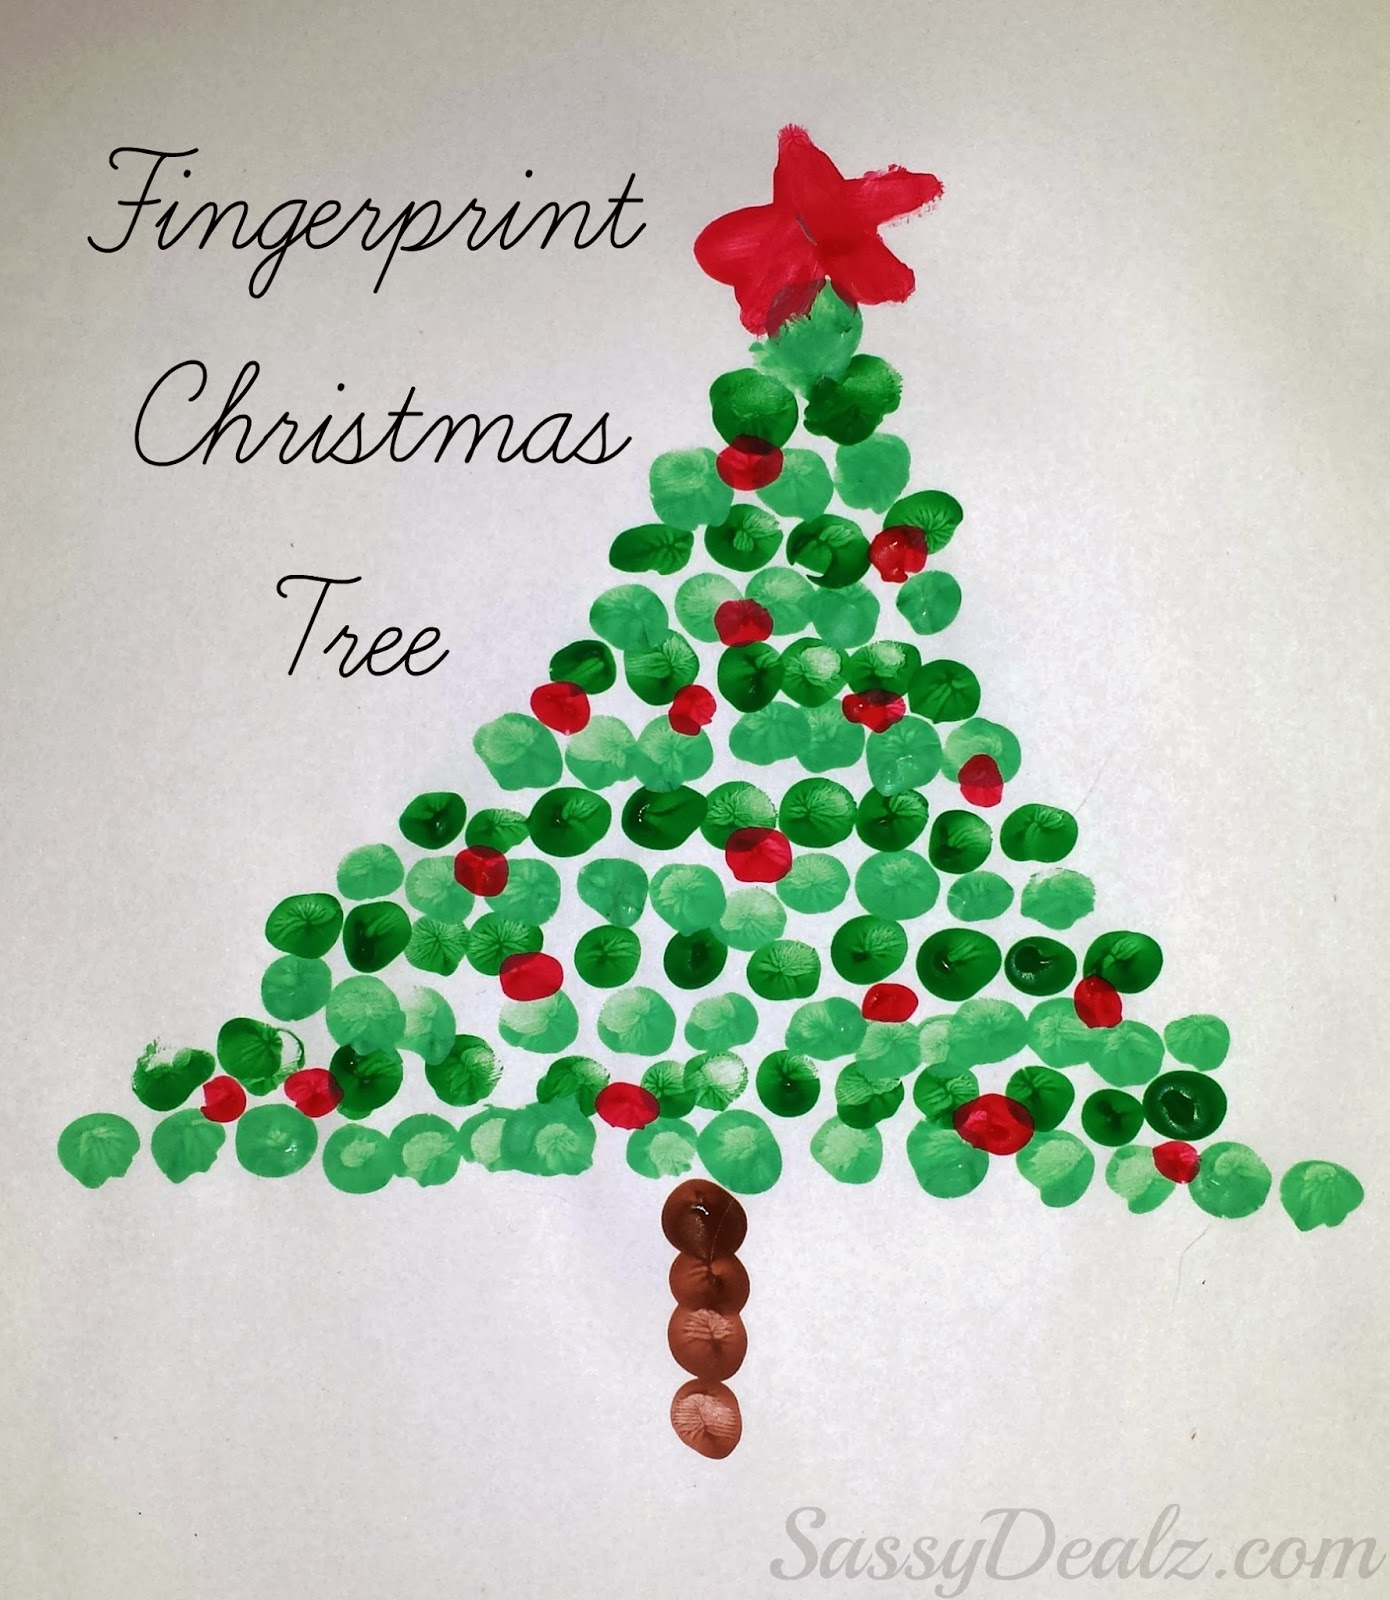 Christmas Fingerprint Crafts